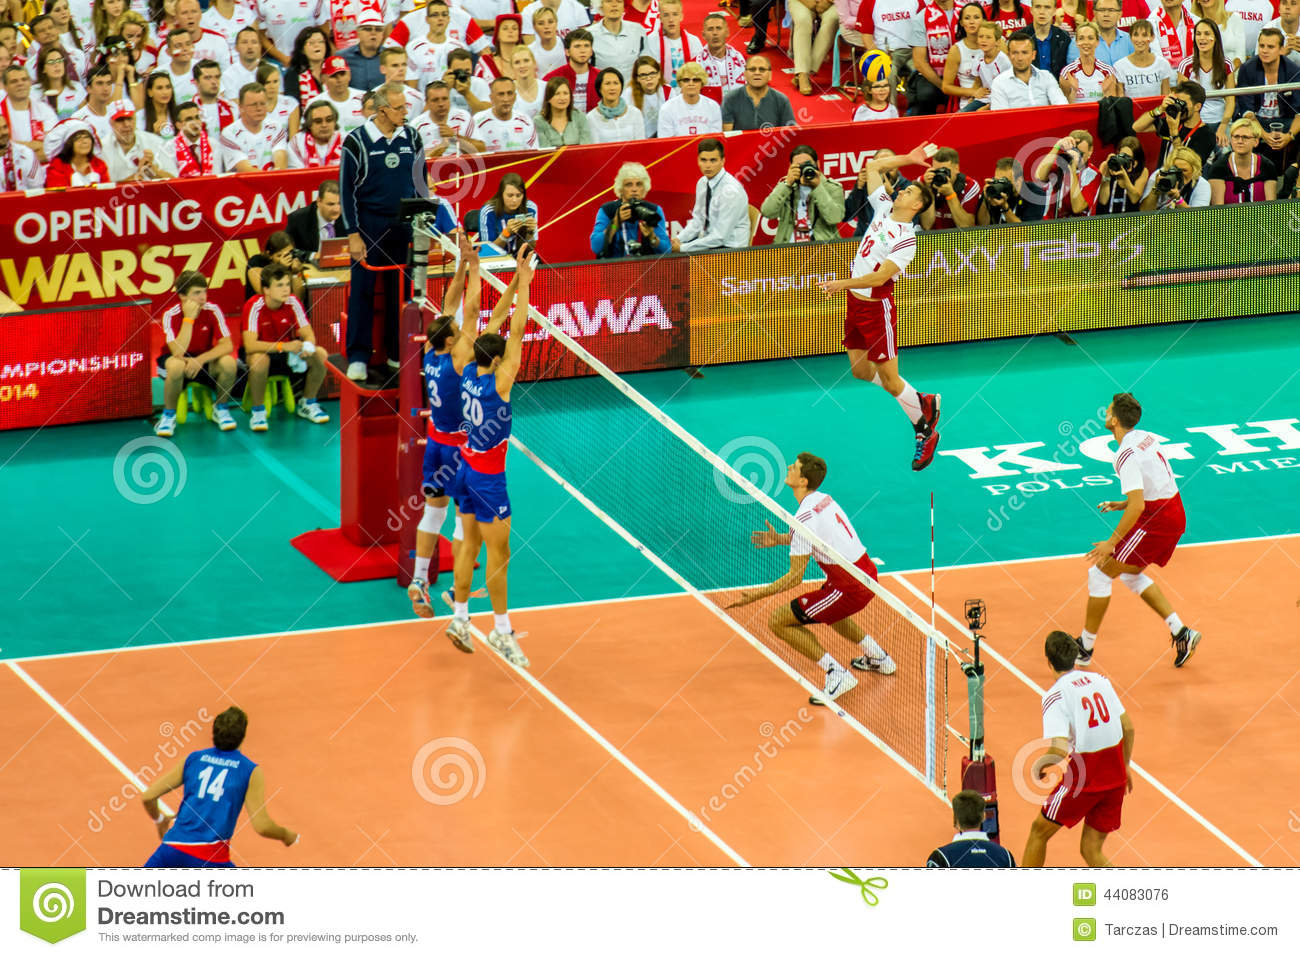 Volleyball Men s World Championship opening game Poland-Serbia, Warsaw, 30 August 2014